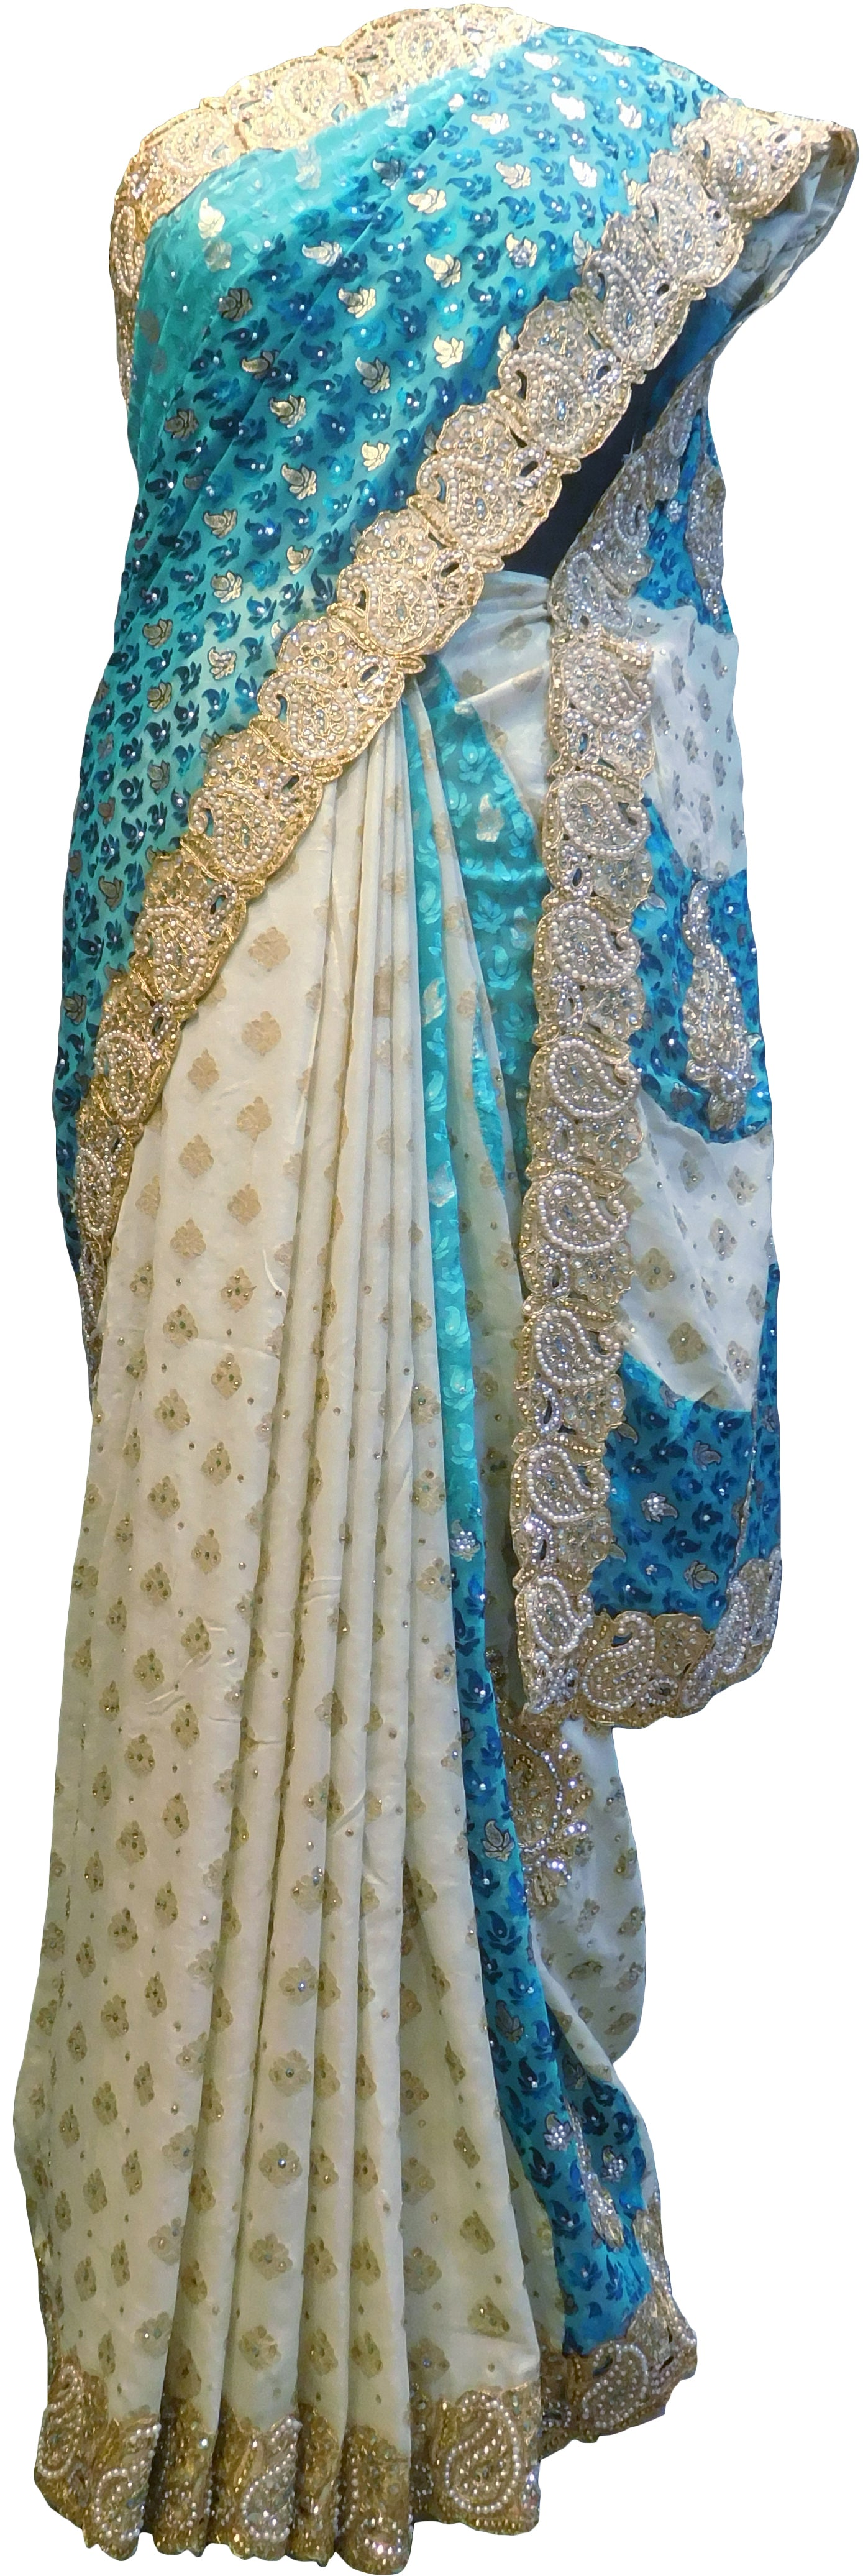 SMSAREE Turquoise & Cream Designer Wedding Partywear Brasso Zari Pearl & Stone Hand Embroidery Work Bridal Saree Sari With Blouse Piece F197